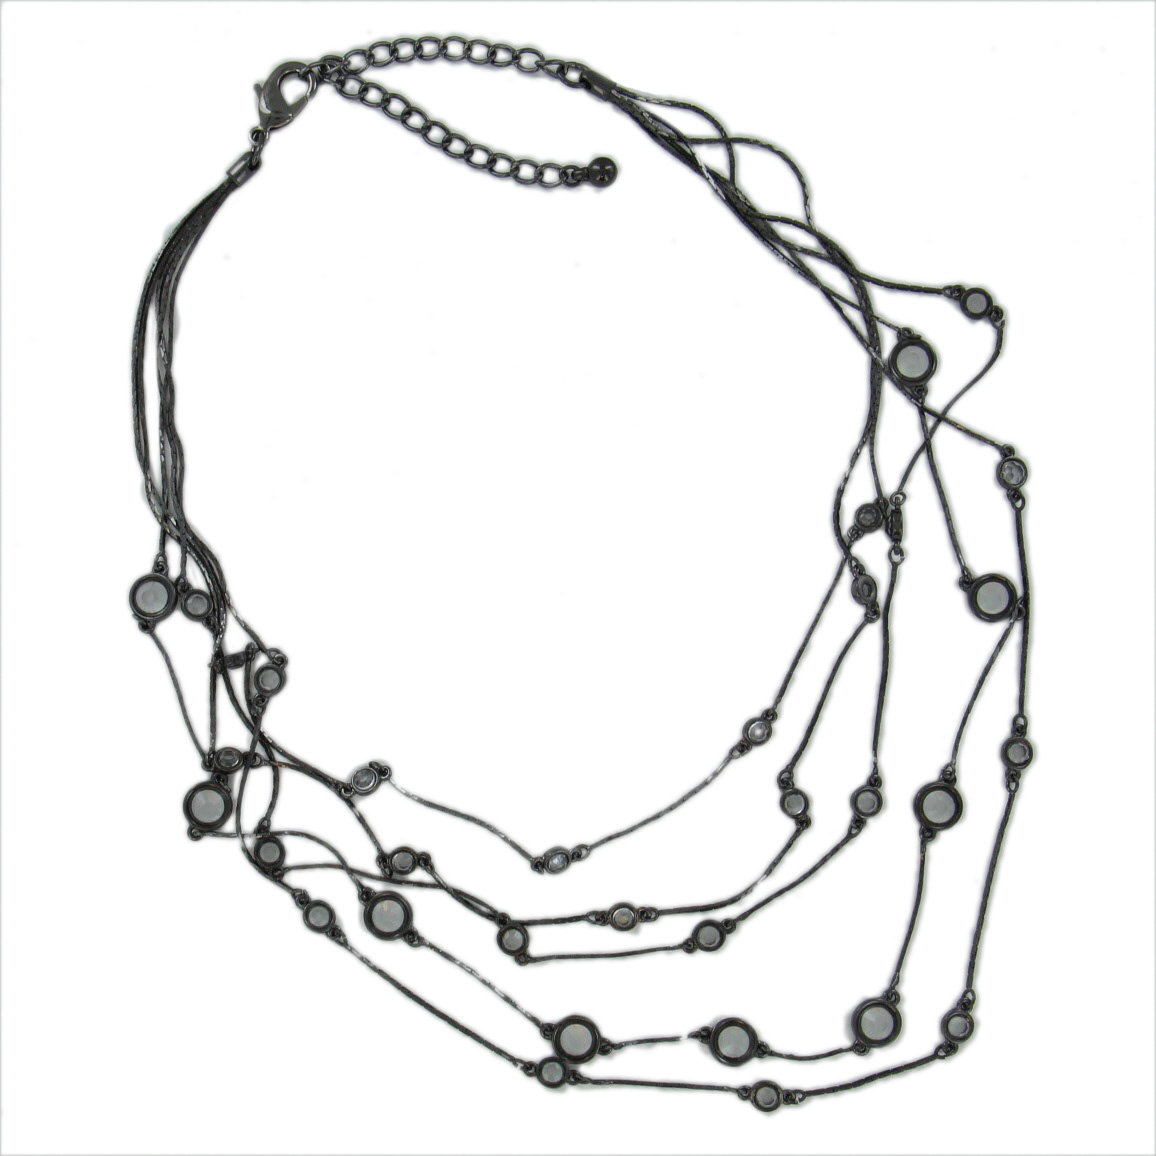 Gun Metal Gray Tone Multistrand 5 Strand Clear Glass Bead Serpentine Chain Necklace